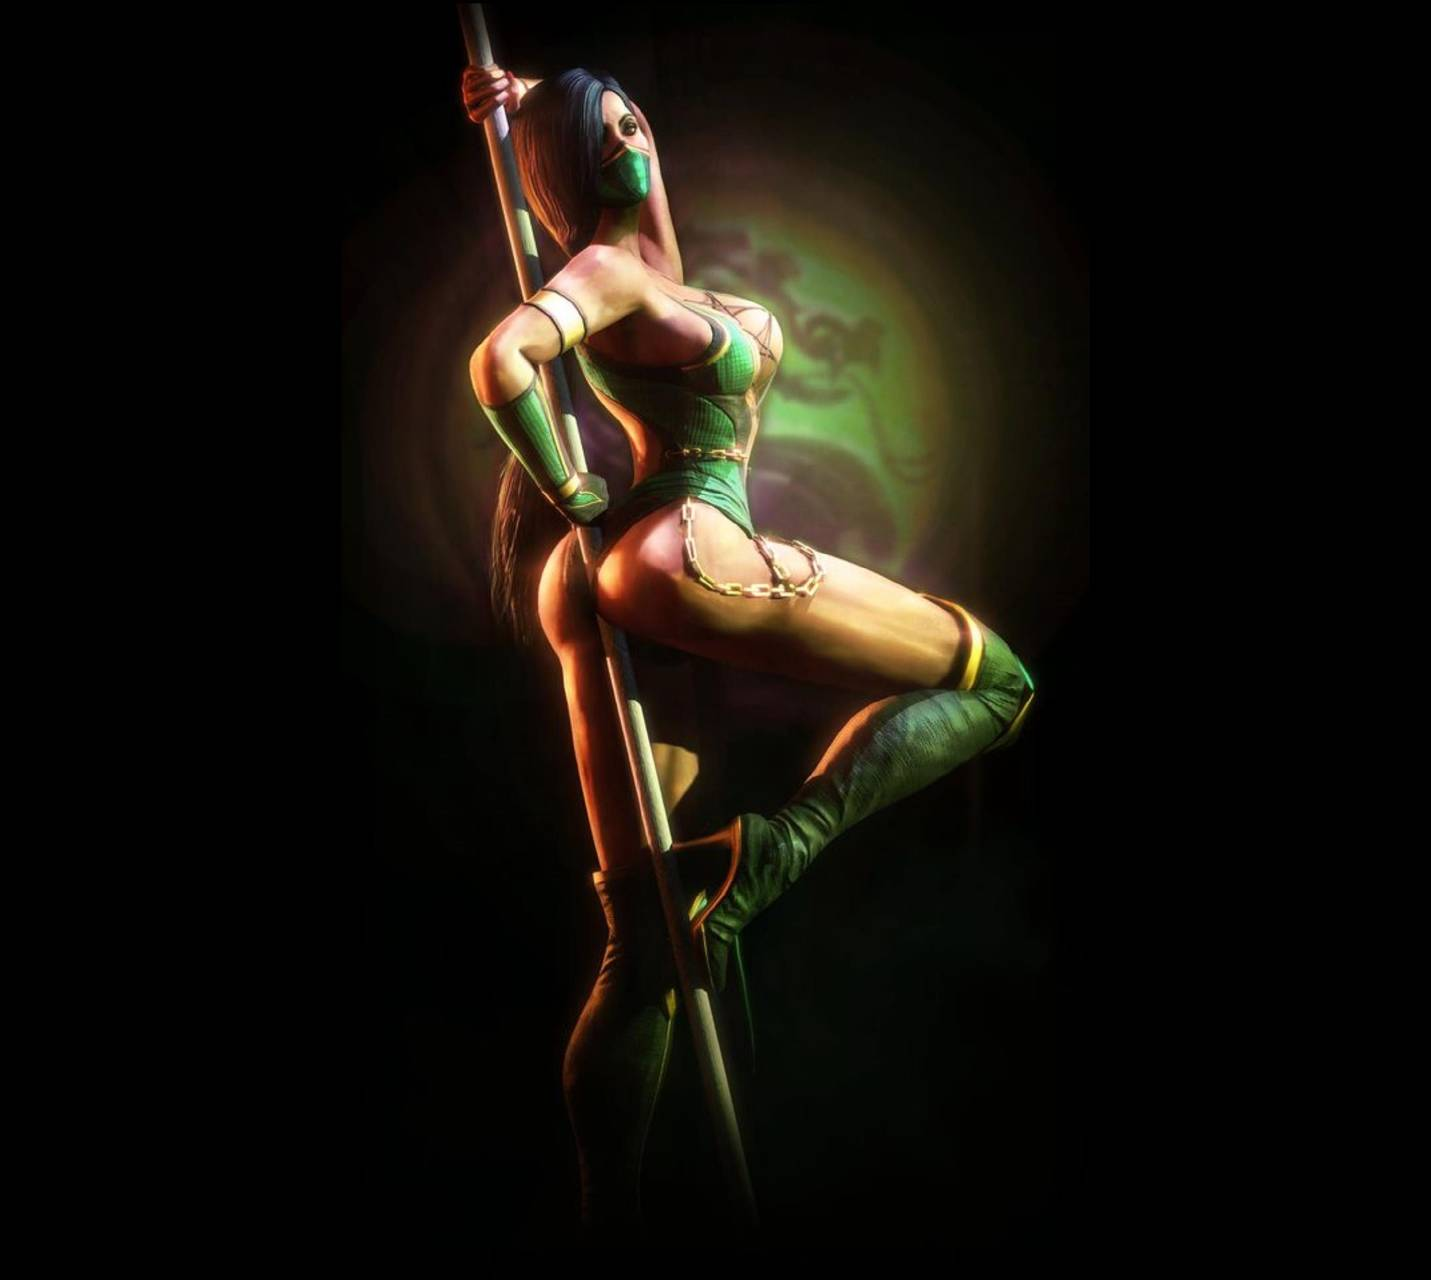 Jade Mortal Kombat Wallpaper By Konig 00 Free On Zedge